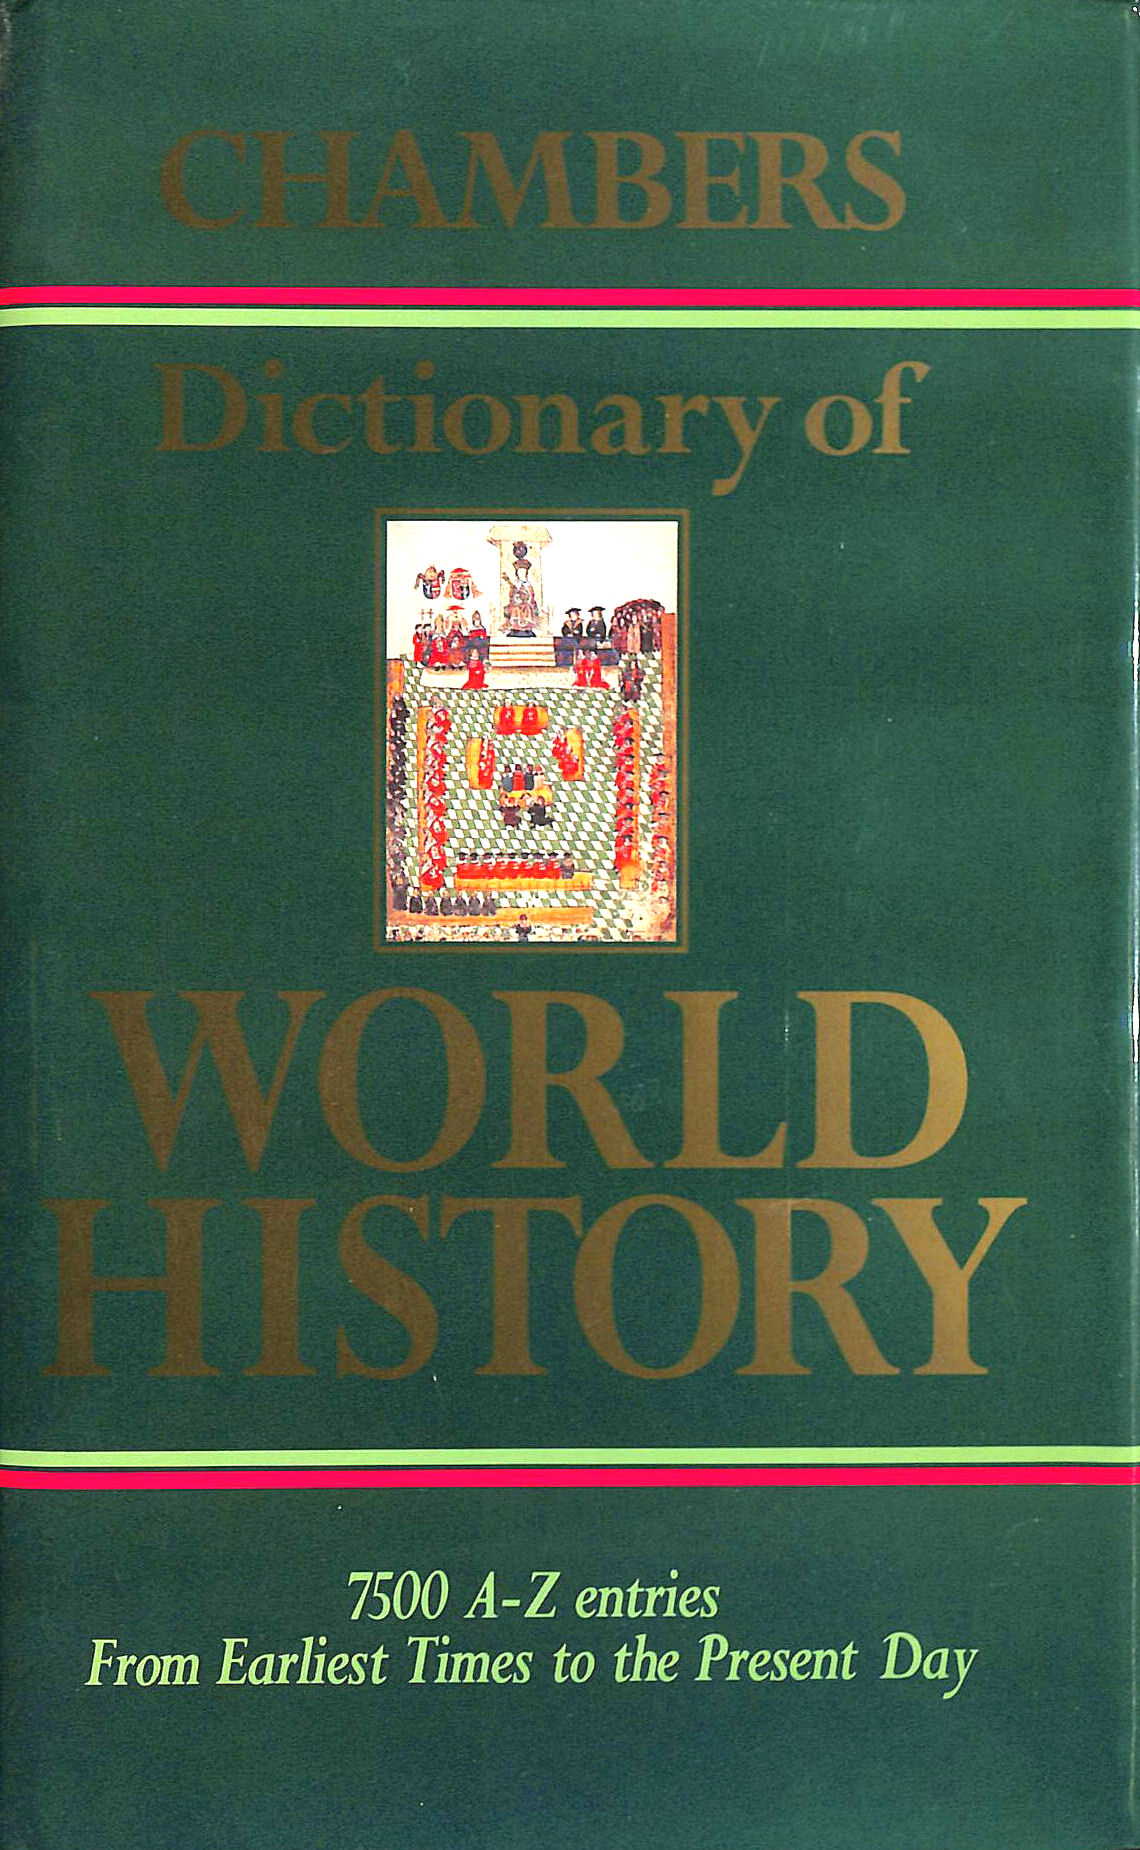 Image for Chambers Dictionary of World History